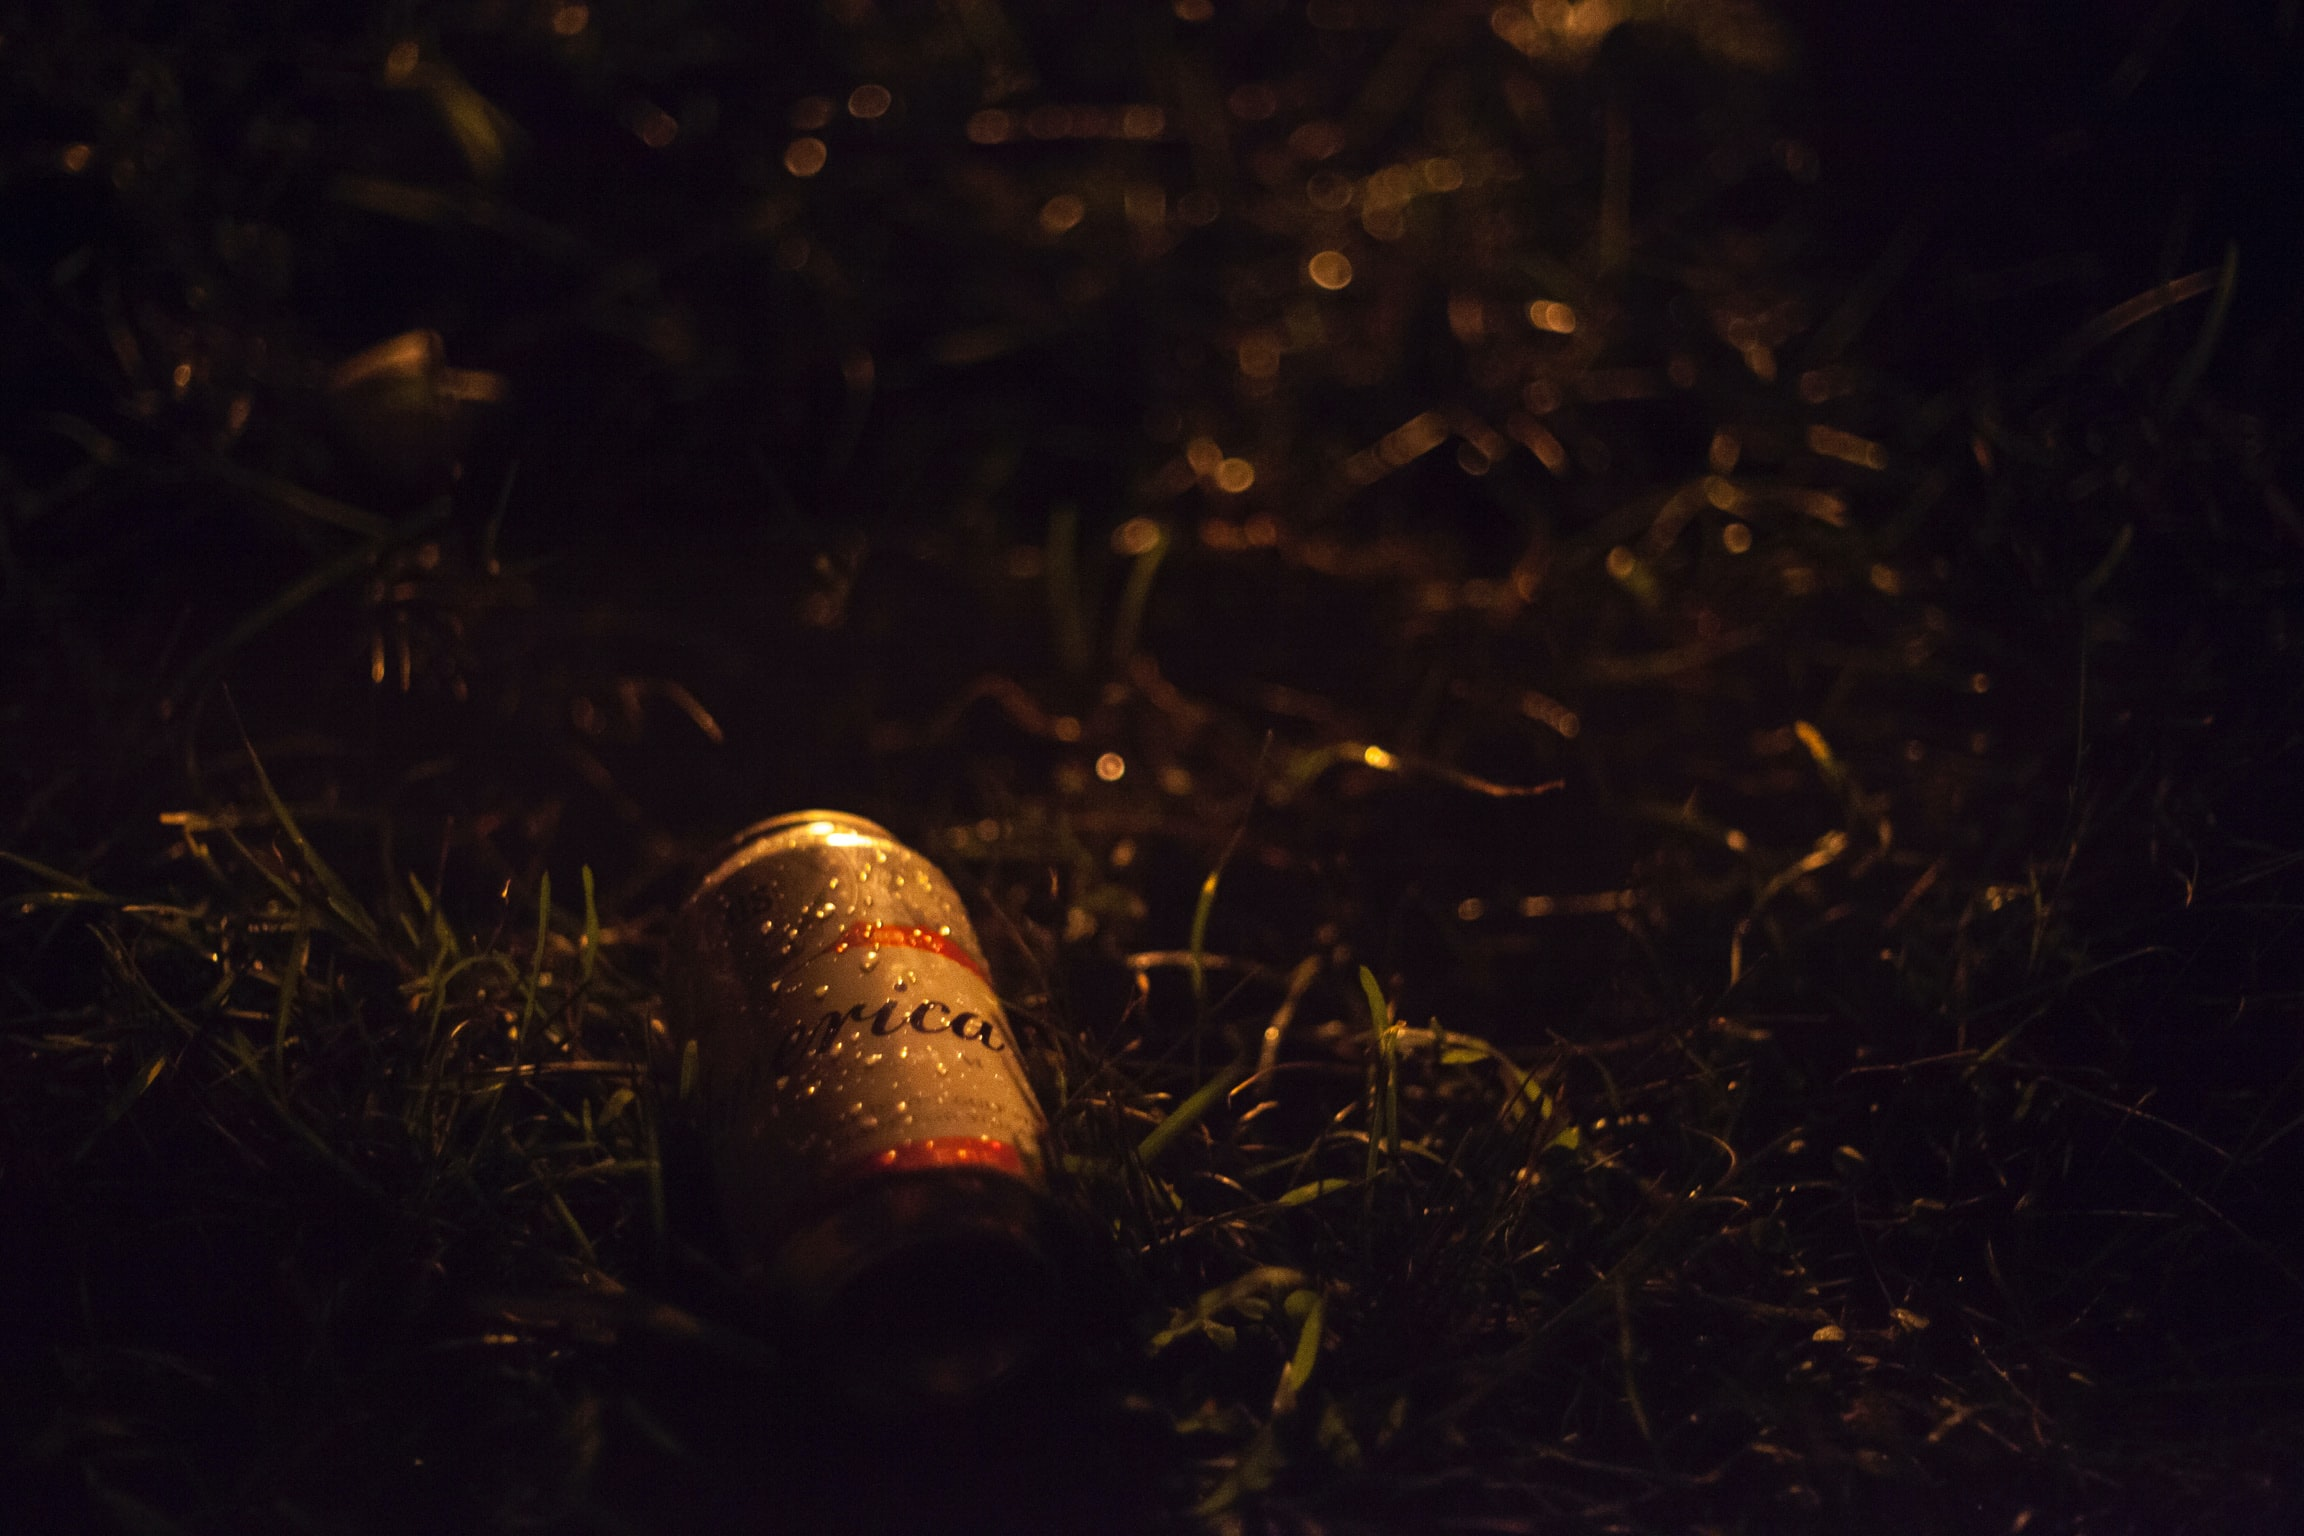 gray and red beverage can on grasses